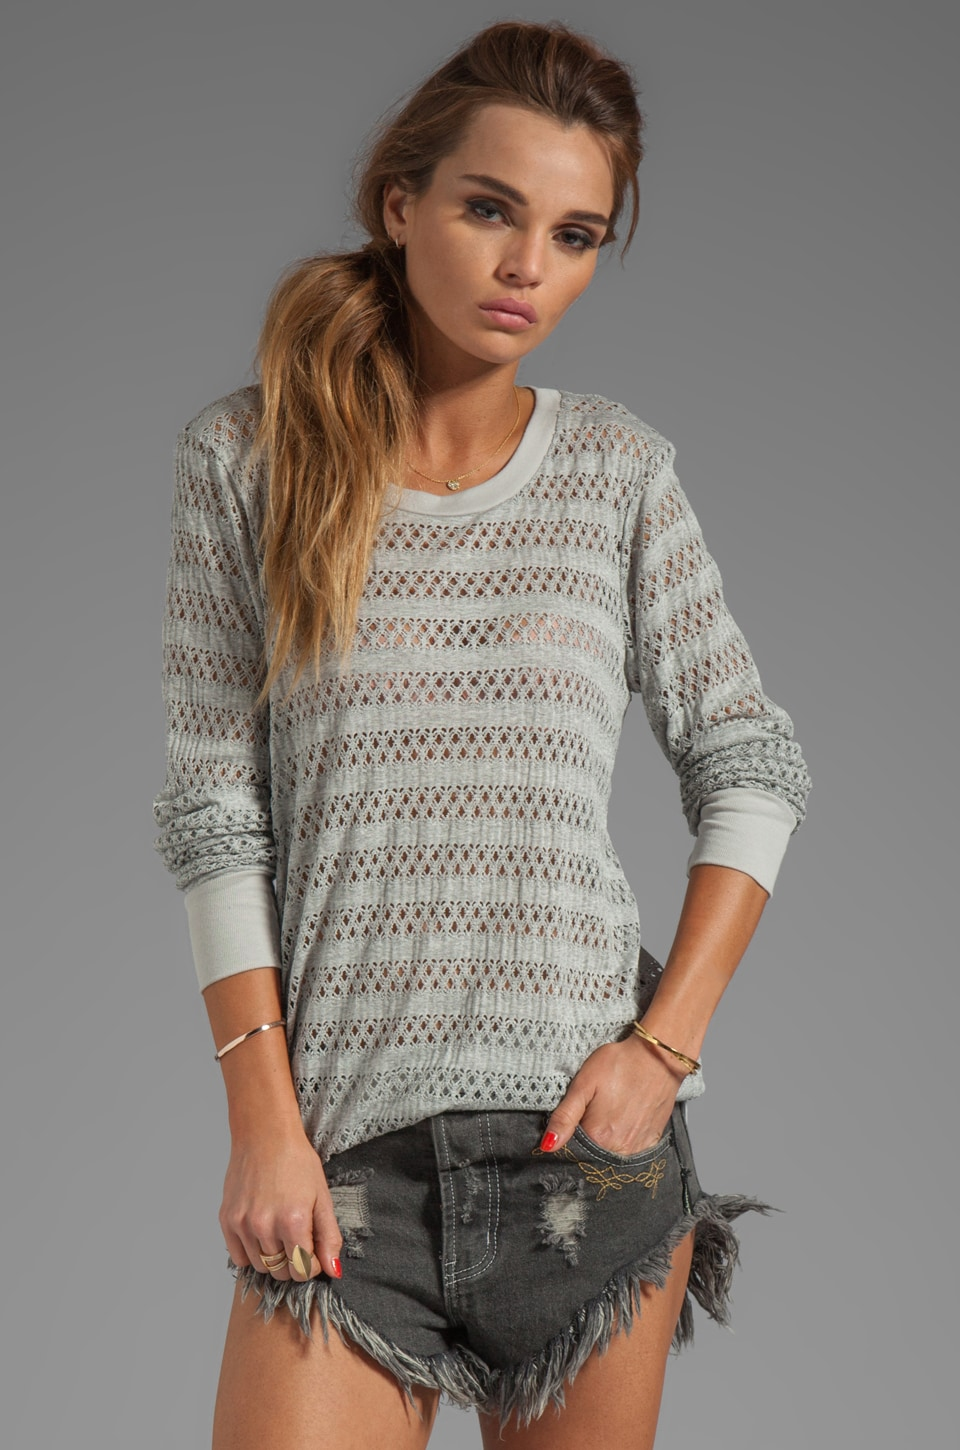 Market Crochet Carine Sweater in Heather Grey